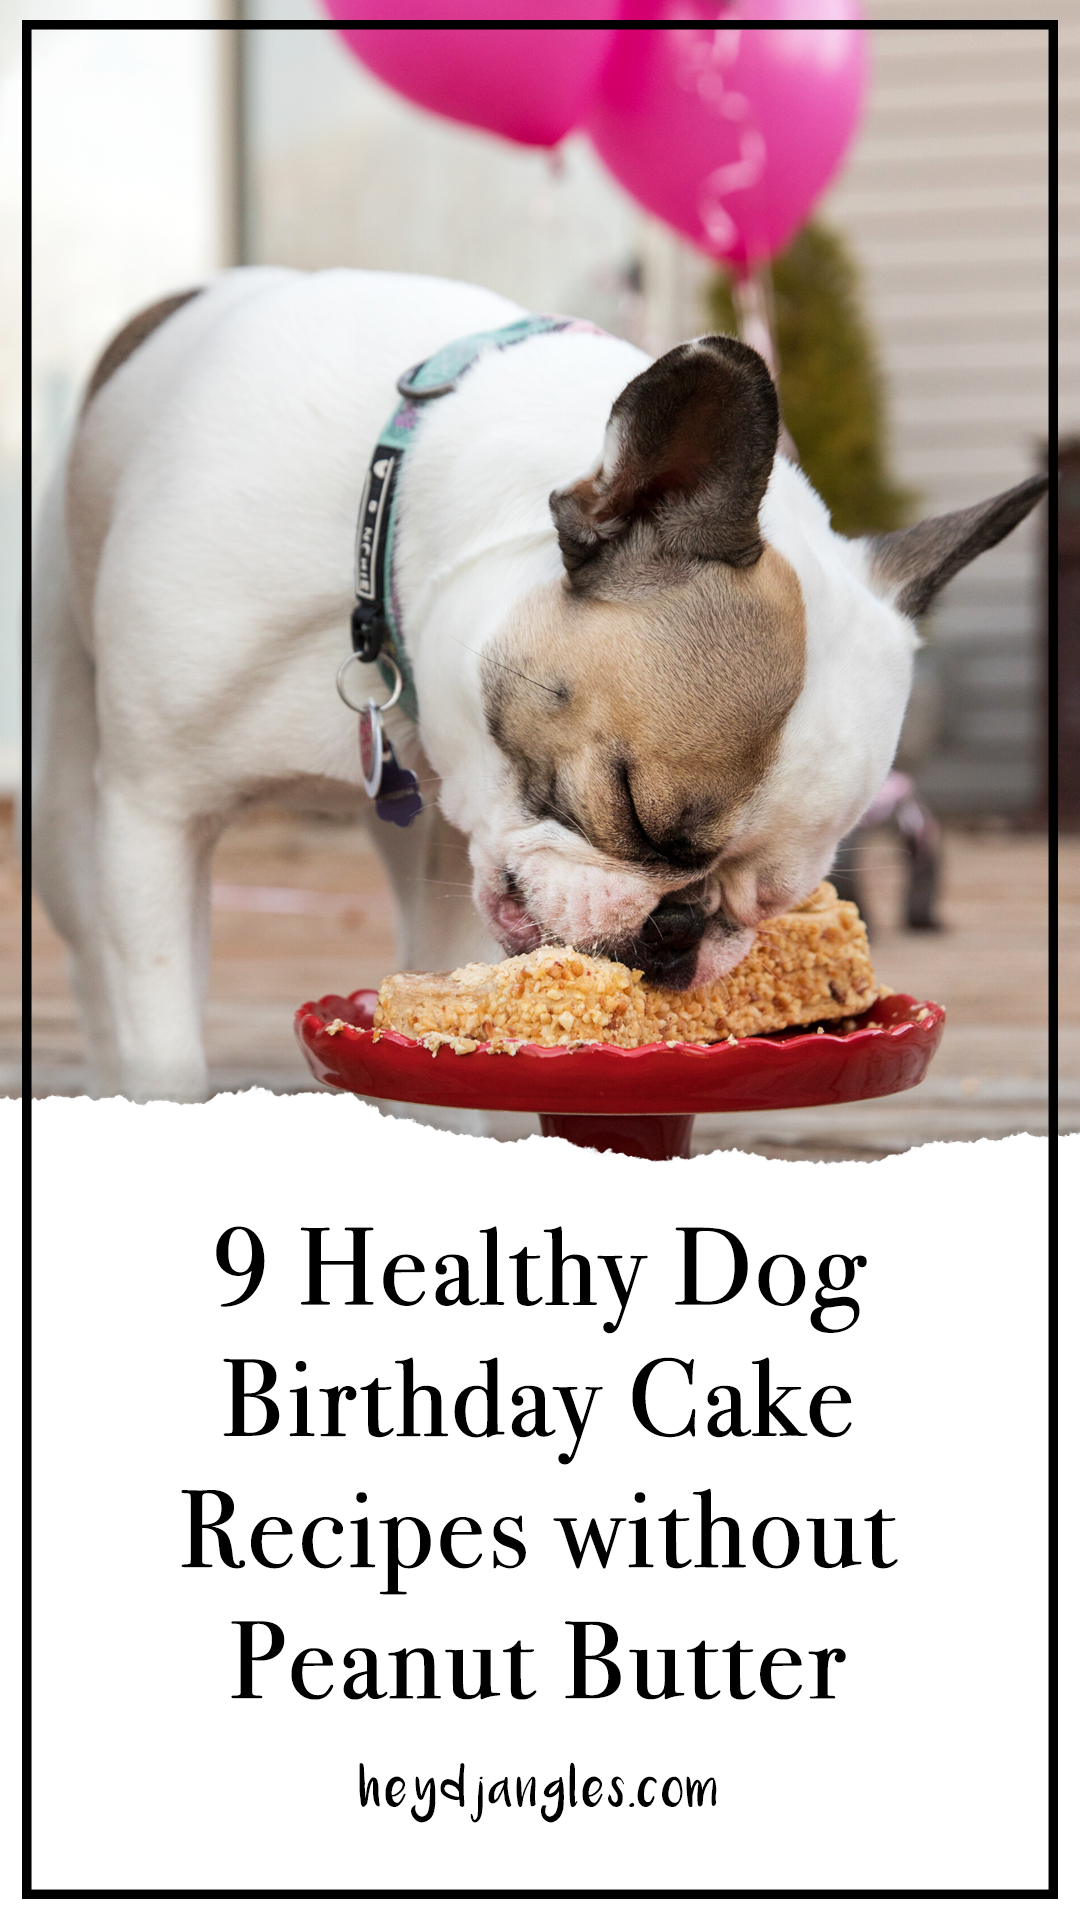 9 Dog Birthday Cake Recipes Without Peanut Butter - heydjangles.com - pup cake recipes, dog treats for sensitive stomachs, dog peanut allergy, dog cake recipes #doglover #dogcake #dogparty